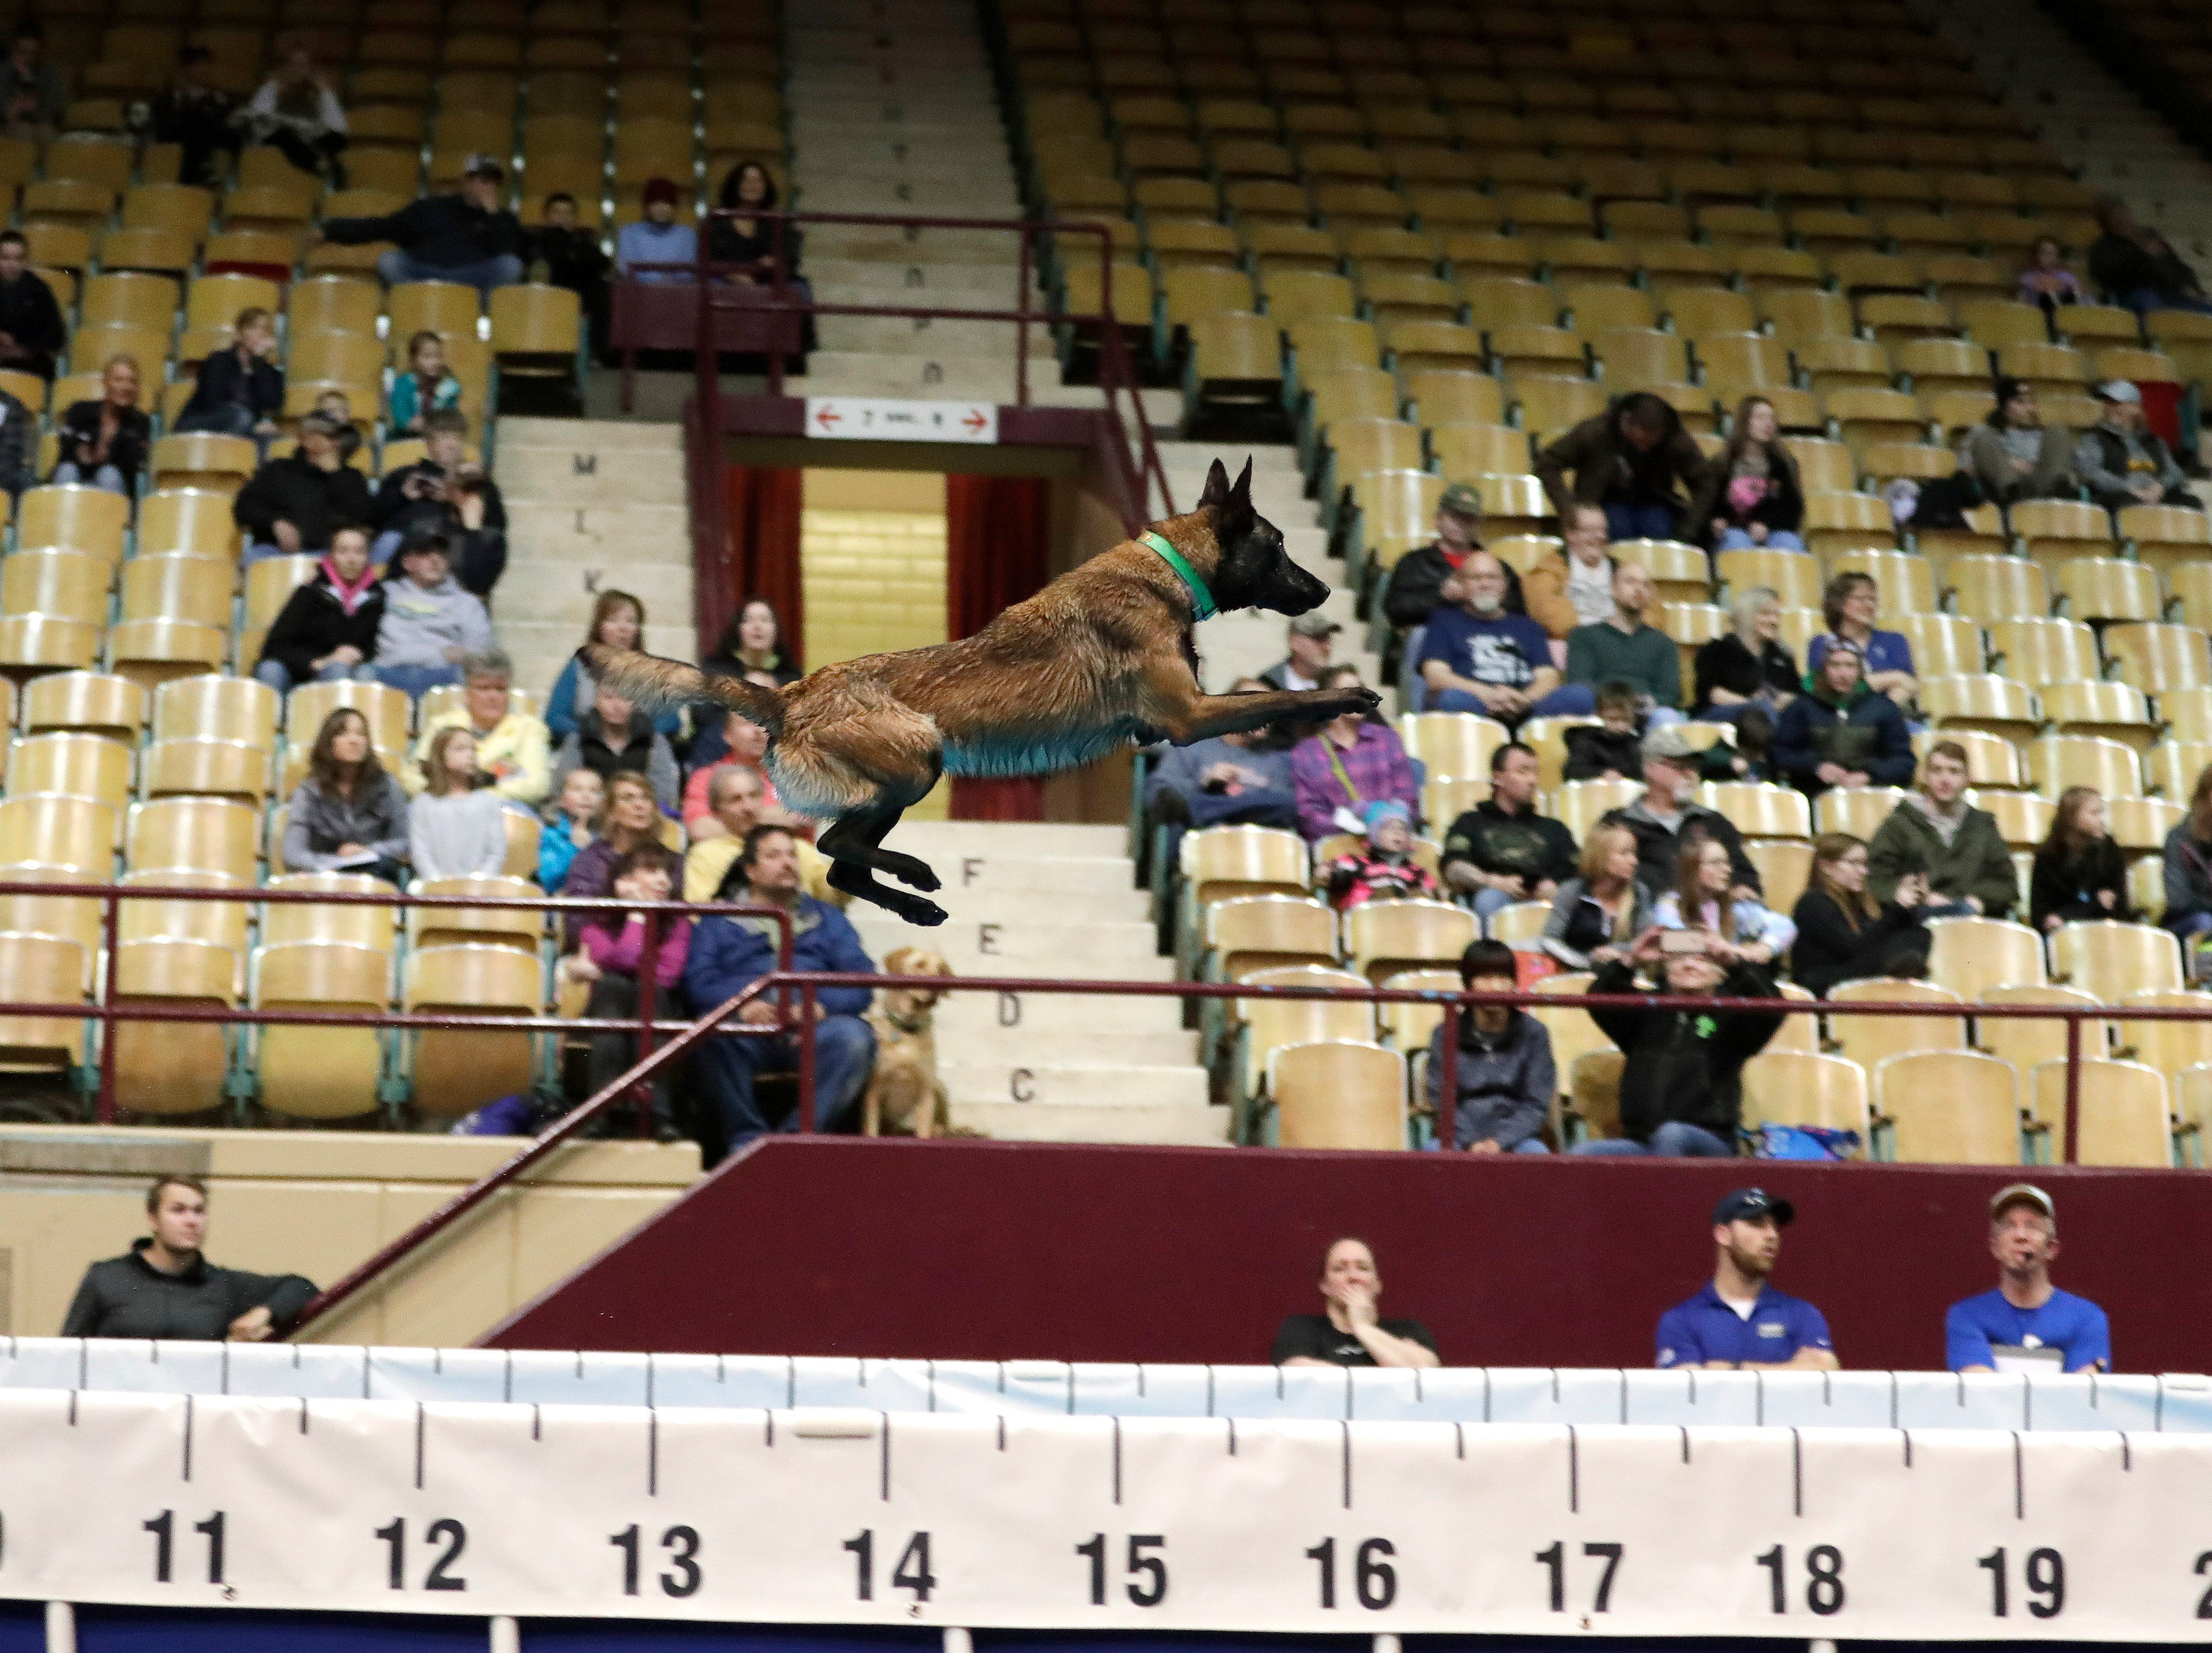 A dog participates in distance-jumping competition on April 13, 2019 at the WBAY Pet Expo held at the Brown County Veterans Memorial Arena and Shopko Hall in Ashwaubenon, Wis. The three-day expo is the last event to be held at the arena before it is demolished.